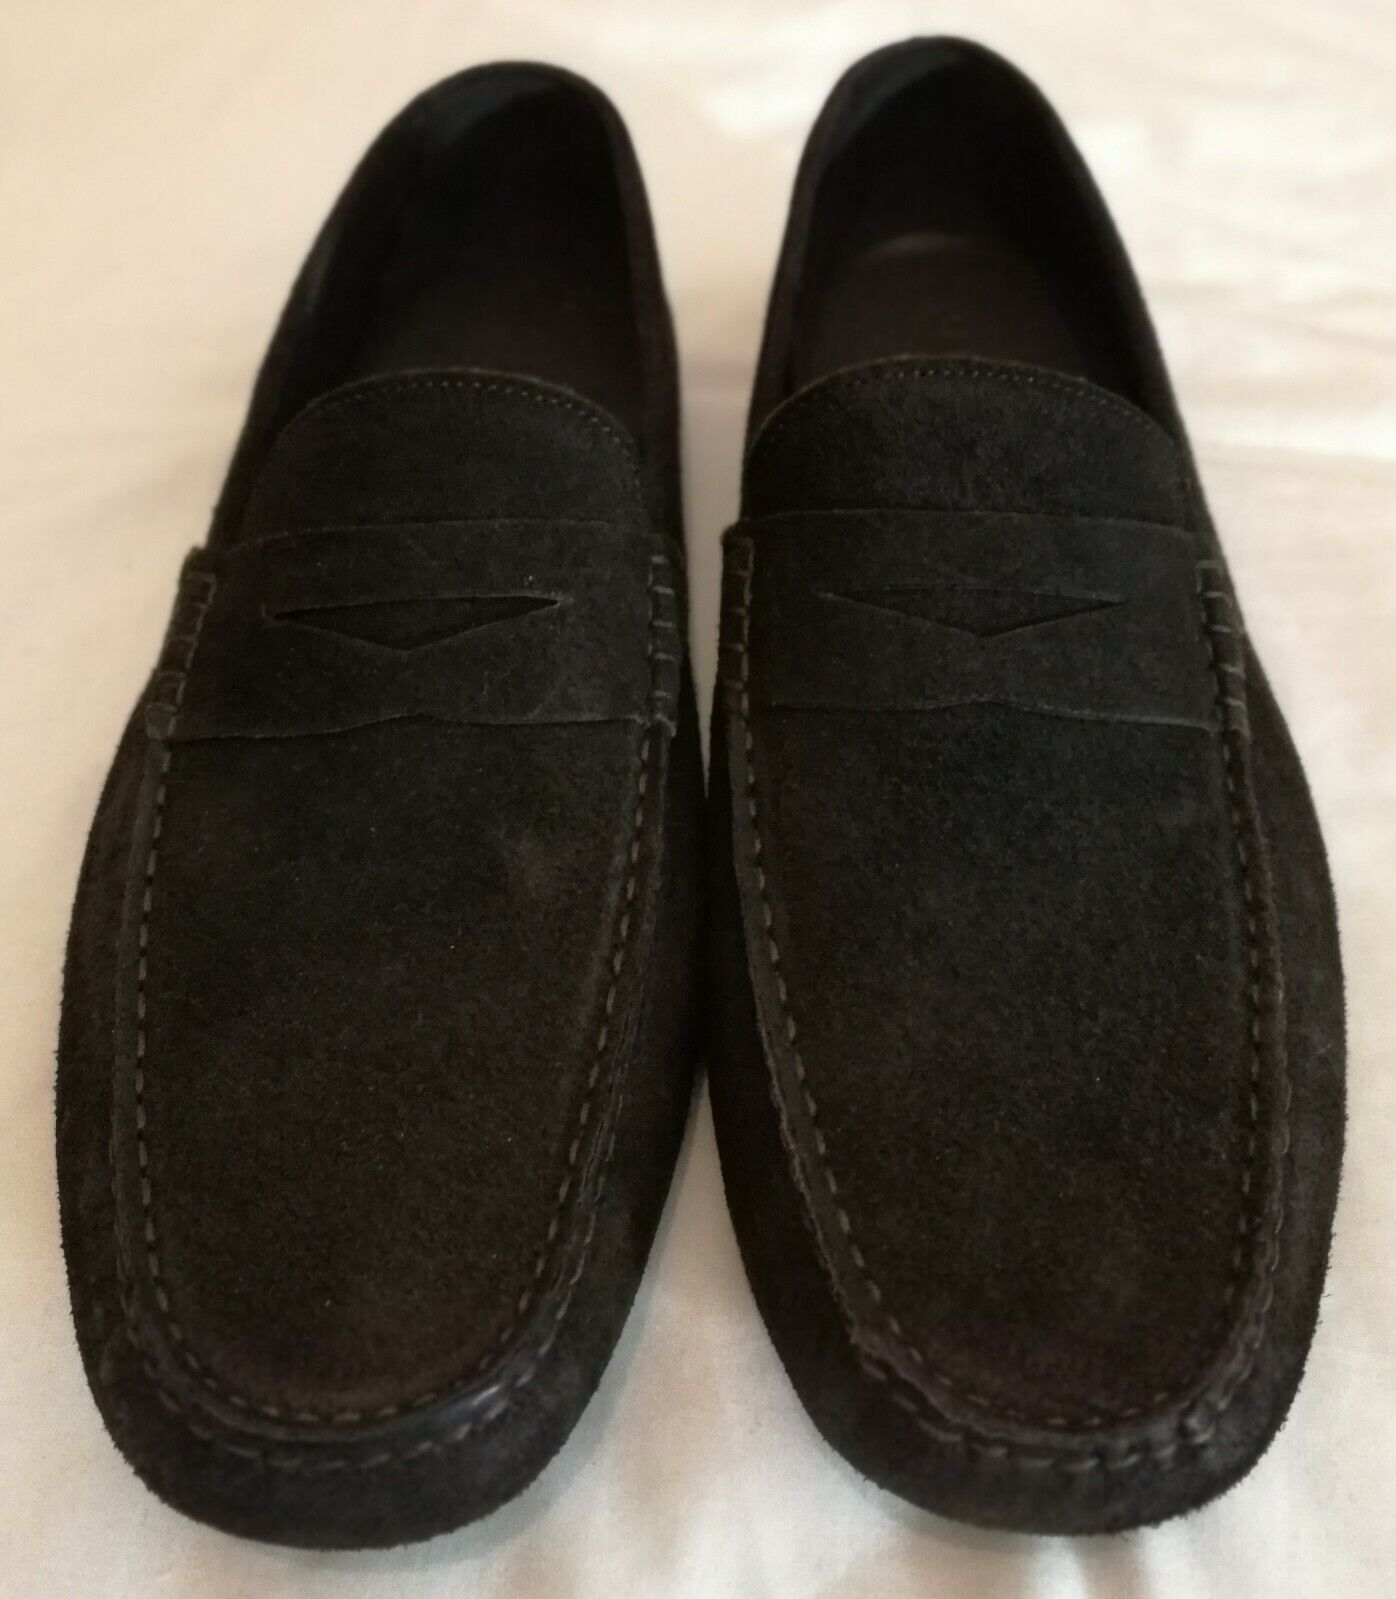 Madison Suede Leather Slip-on Loafers Moccasin braun uk 9 eu 43 Made in